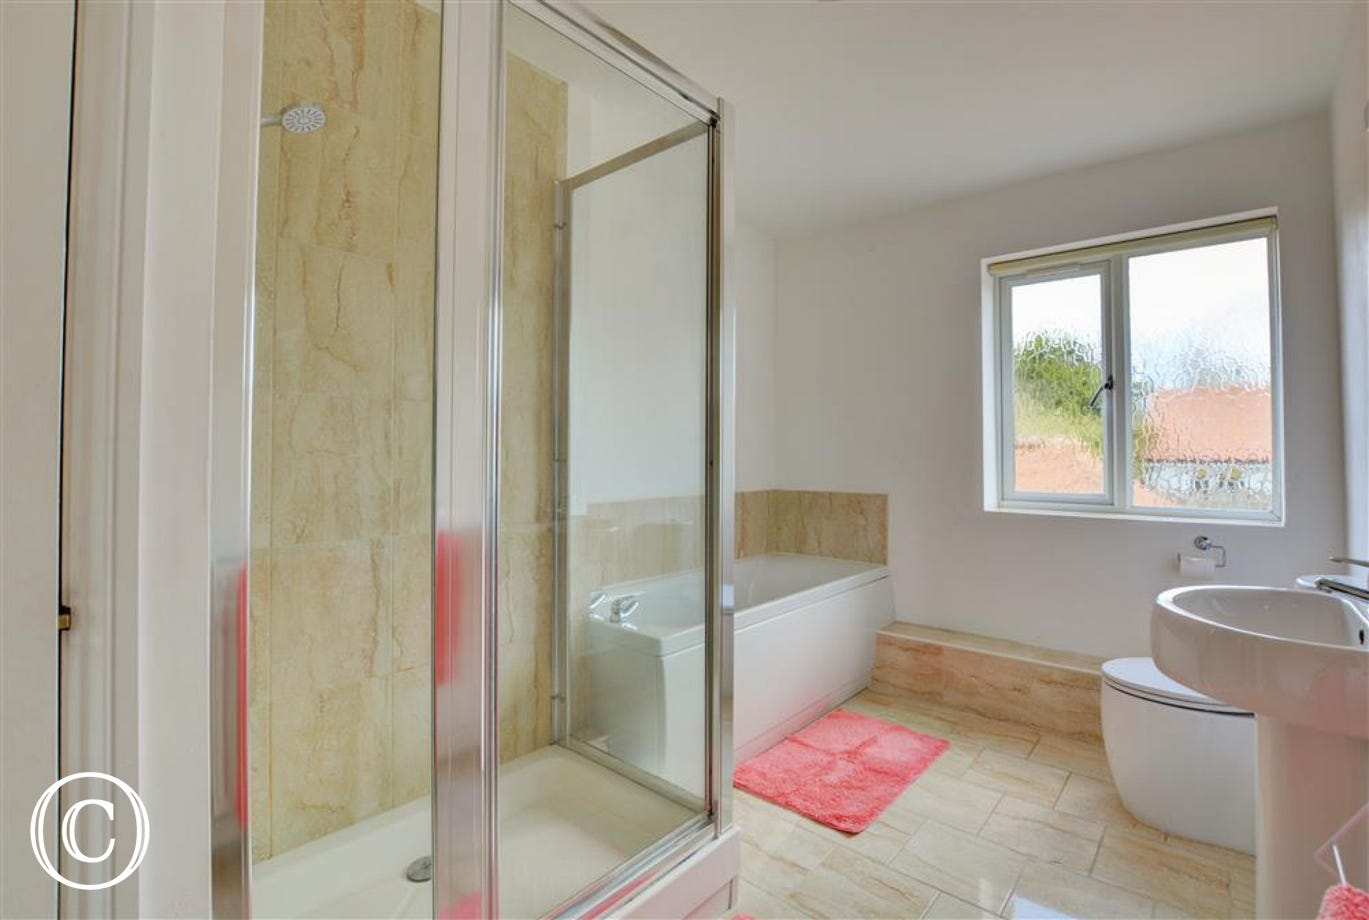 Bathroom with bath and shower cubicle